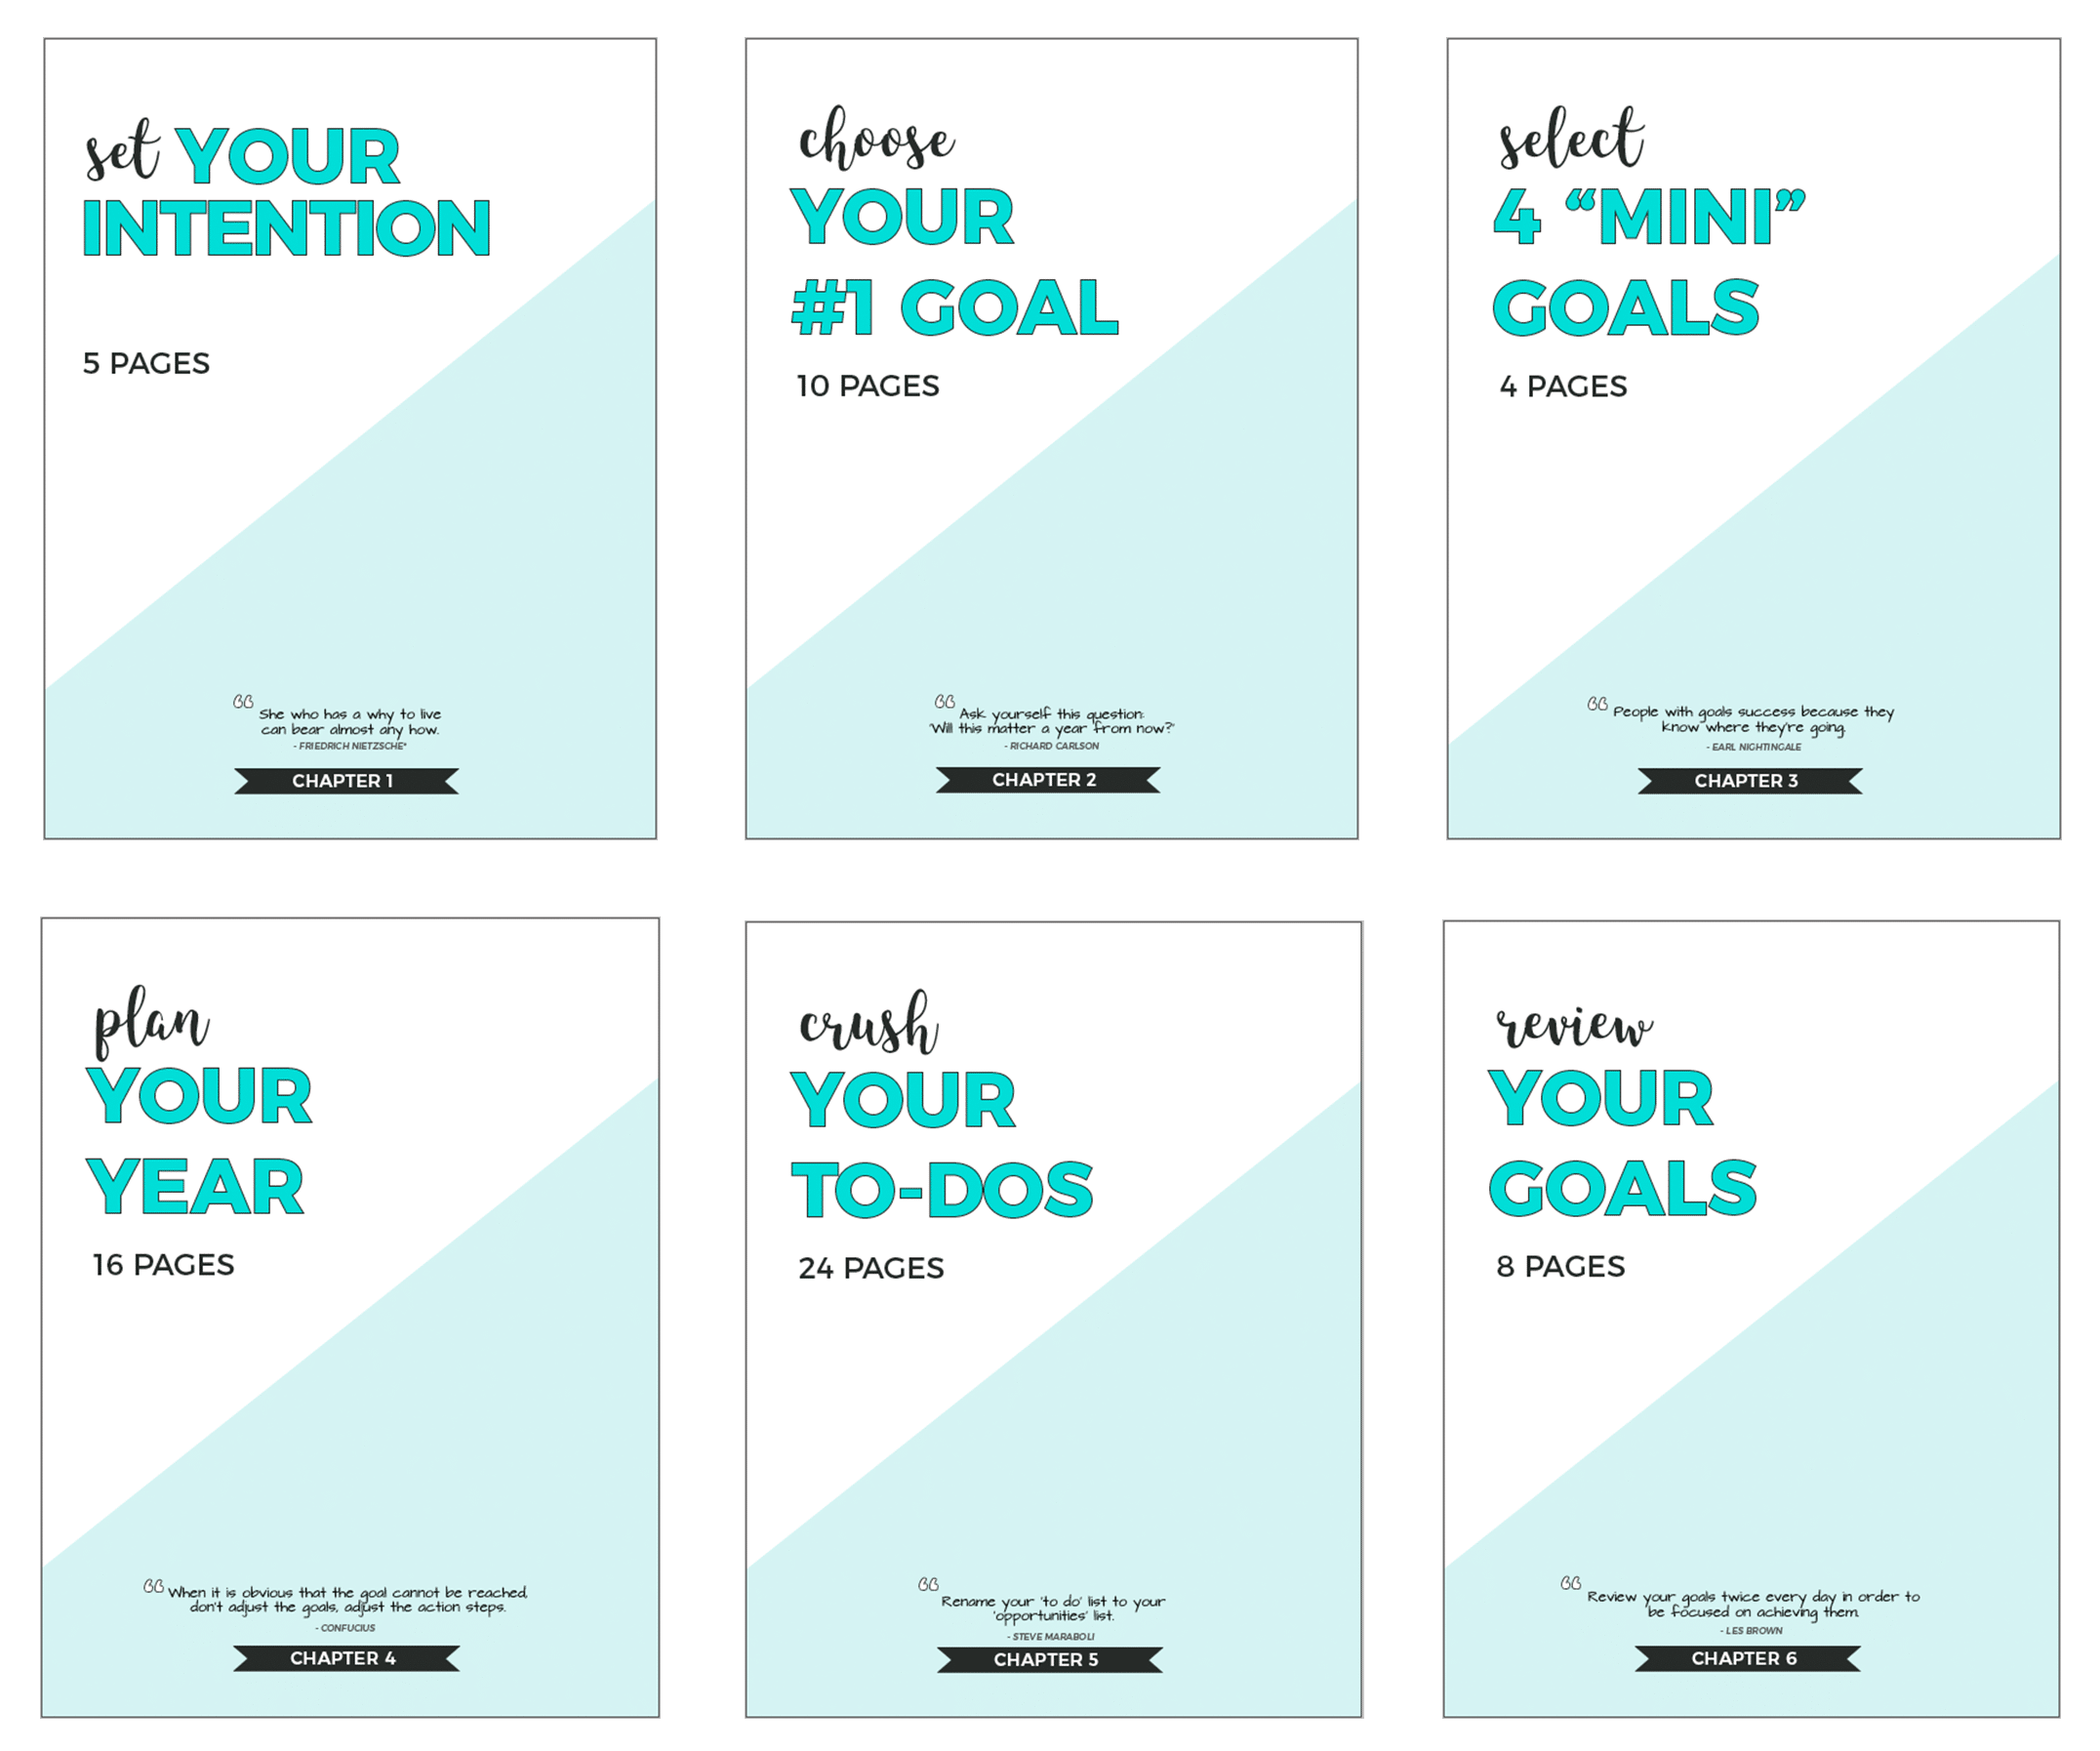 6 Chapters of the Slay Your Goals Planner